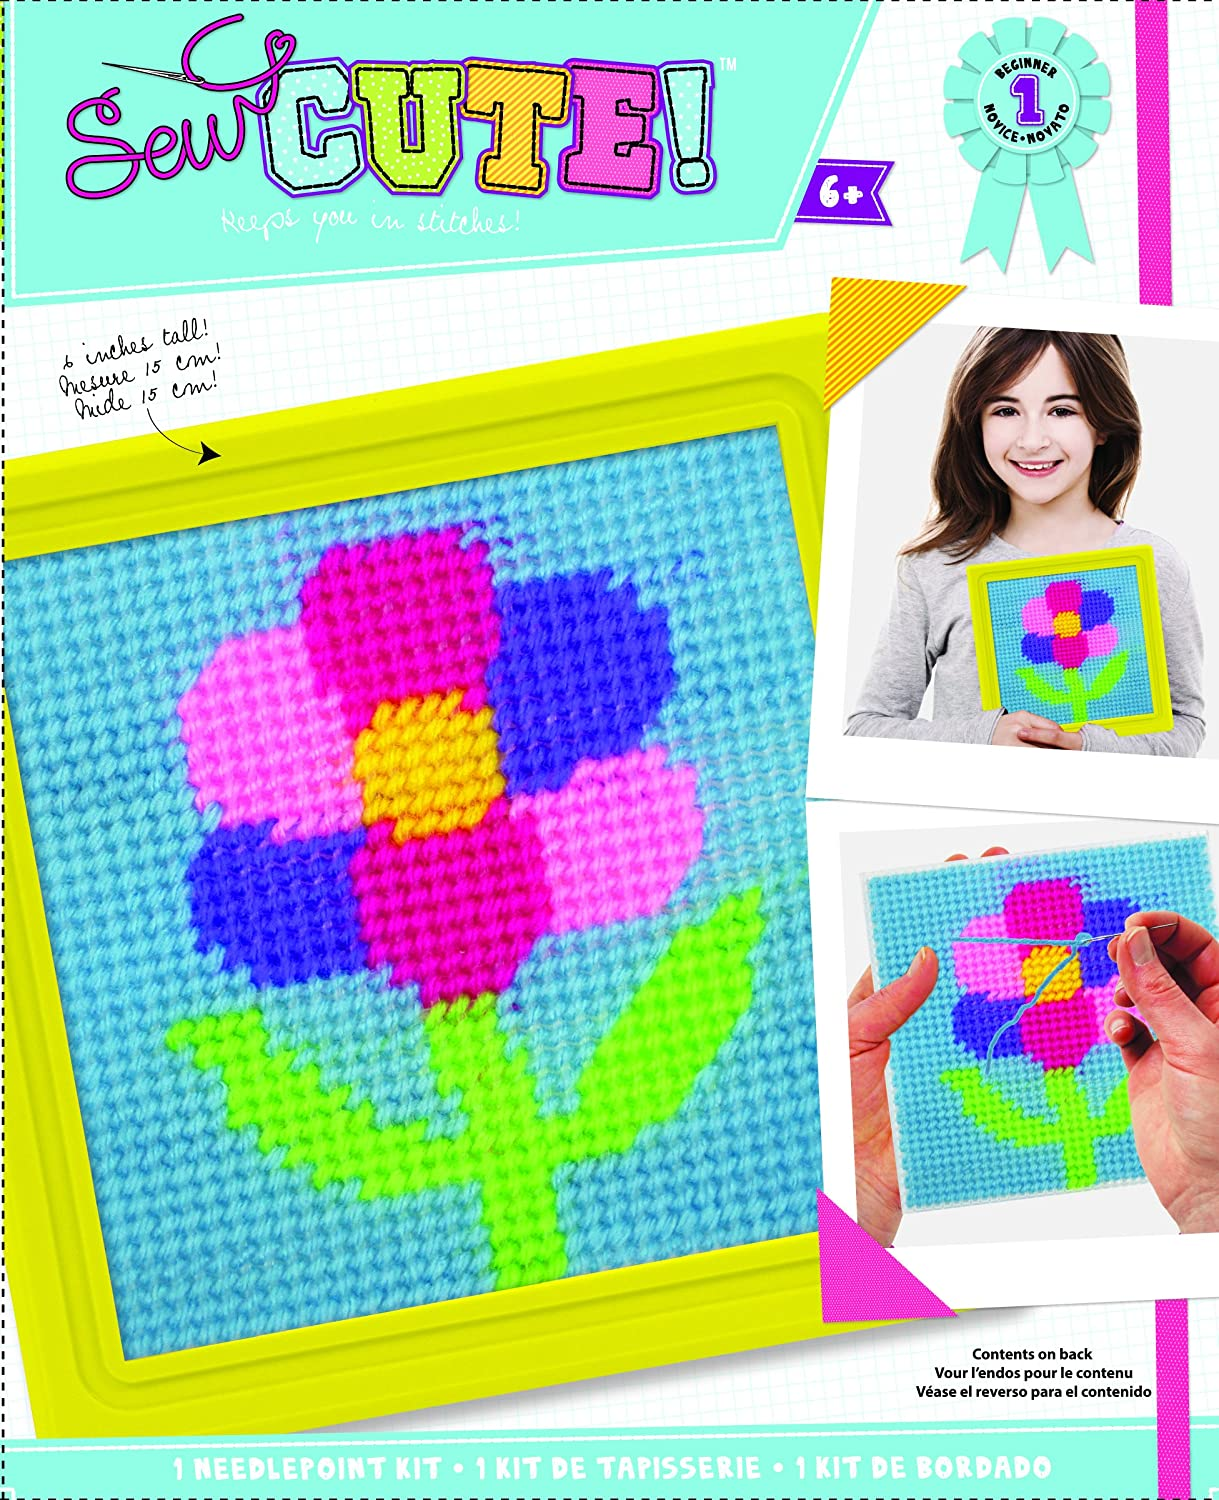 colorbok Sew Cute Flower Needlepoint Kit6inch x 6inch Stitched in Yarn